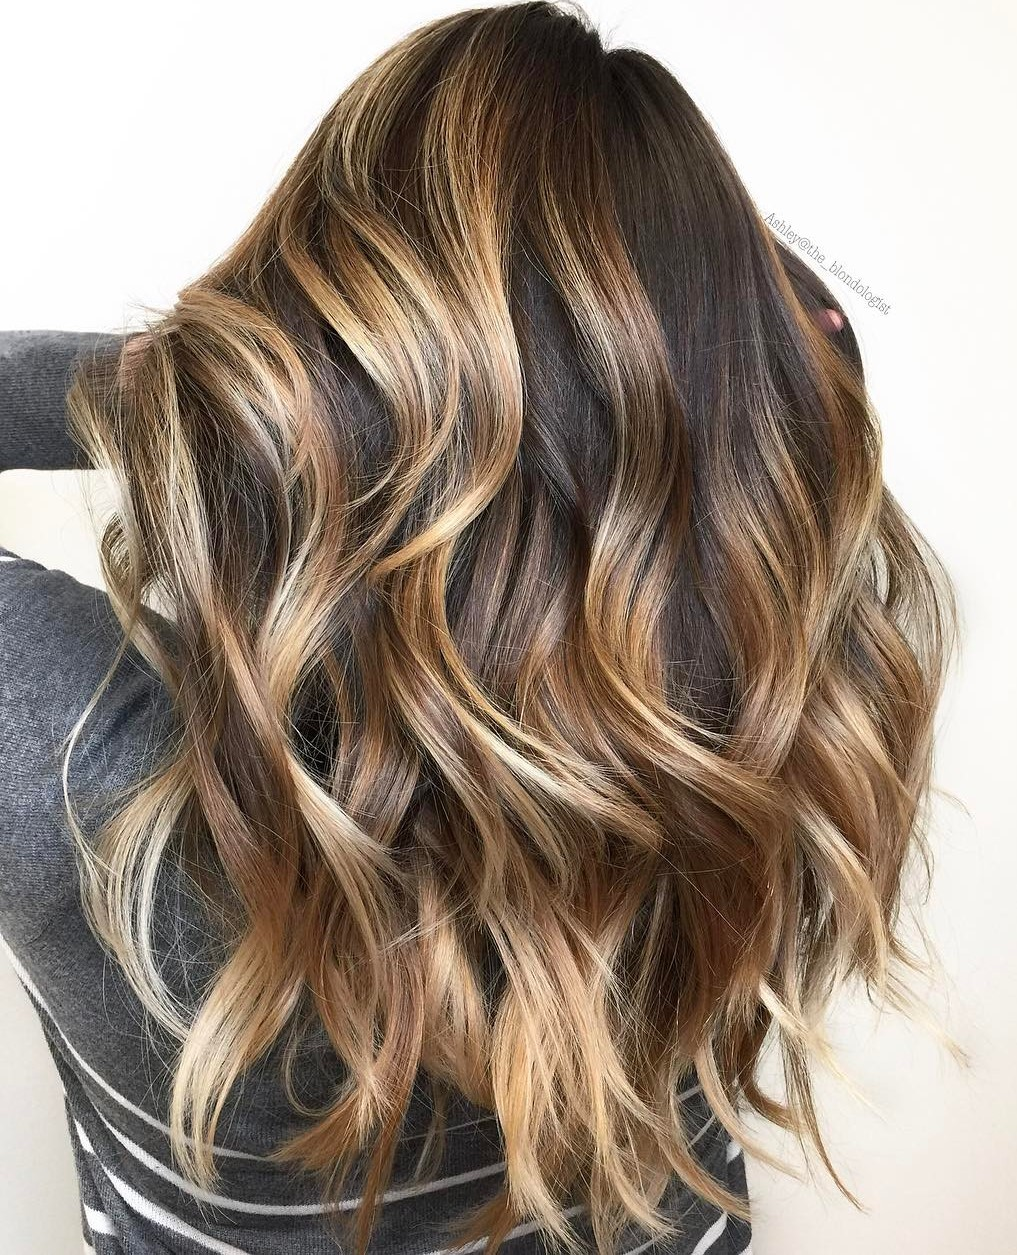 Long Brown Hair with Sun-Kissed Ombre